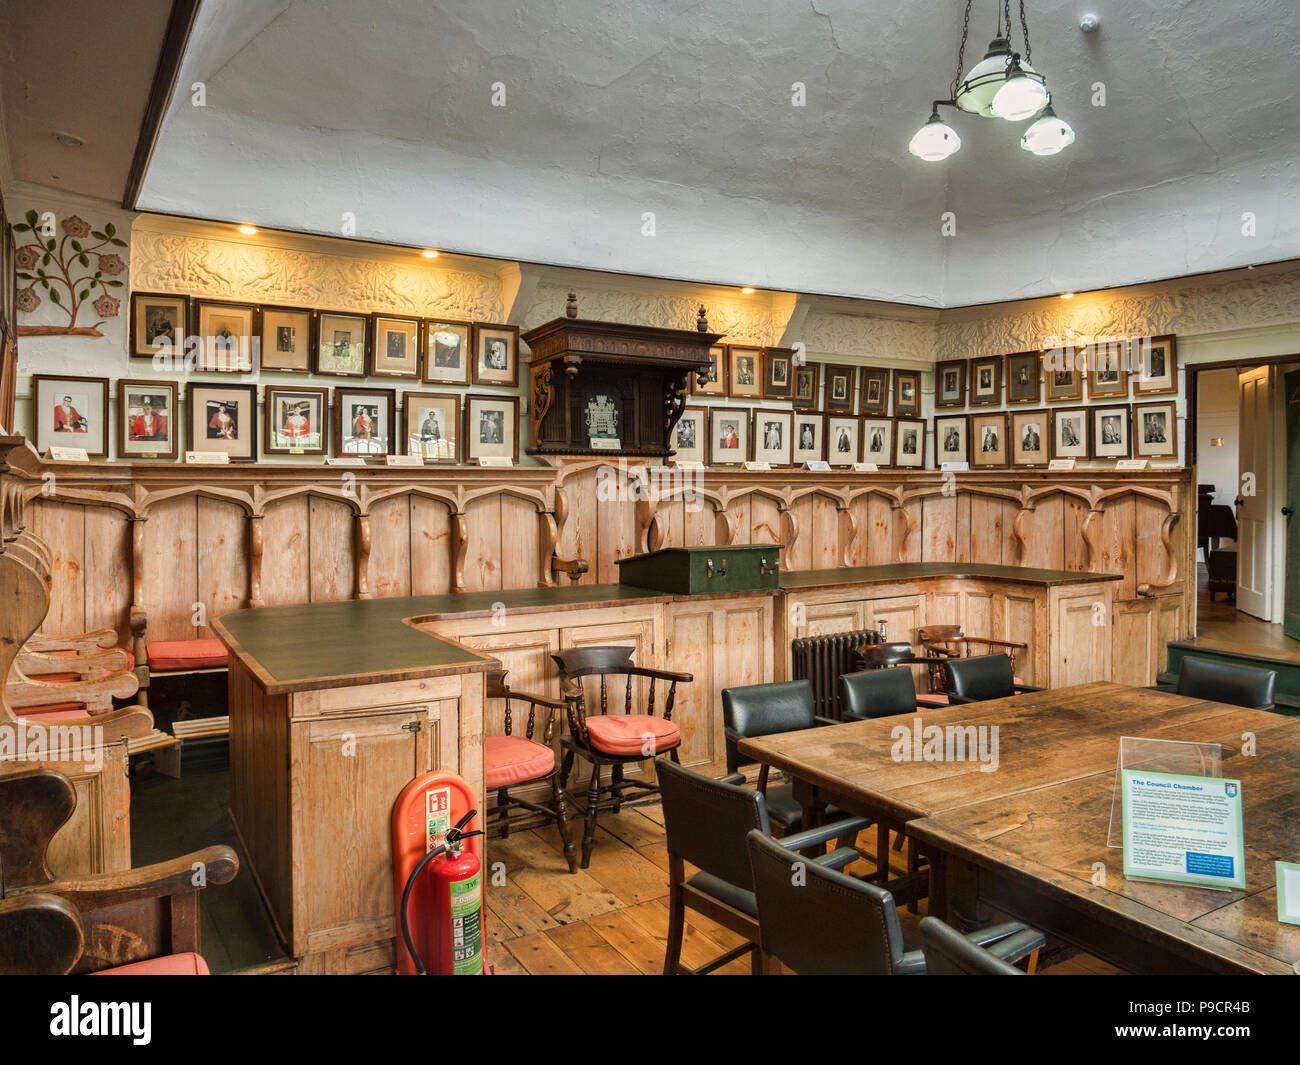 25 May 2018: Totnes, Devon, UK - The historic council chamber in the guildhall. - Stock Image